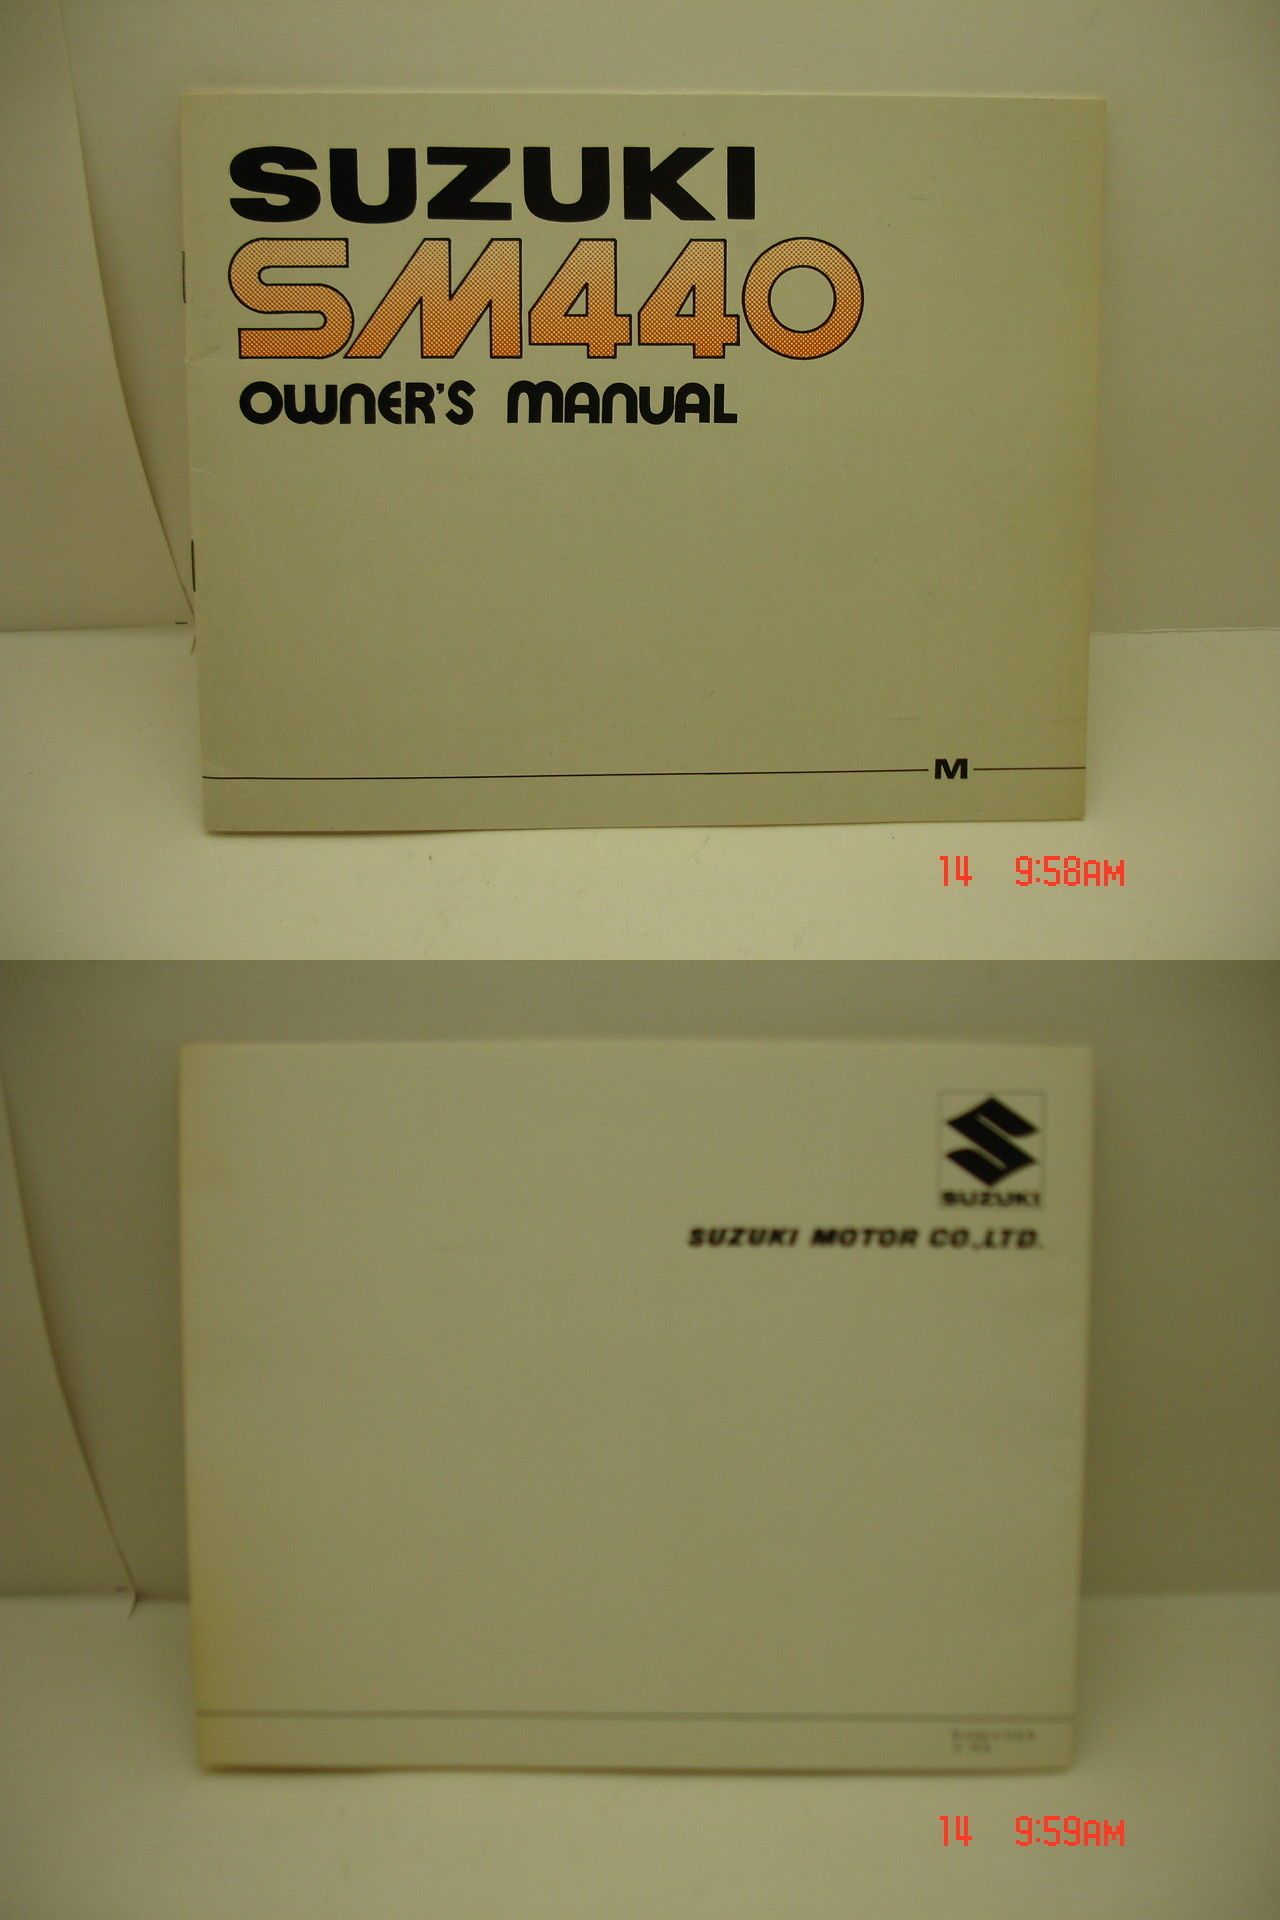 Manuals 26351: 1975 Suzuki Sm440 Snowmobile Owners Manual. Vintage. New ->  BUY